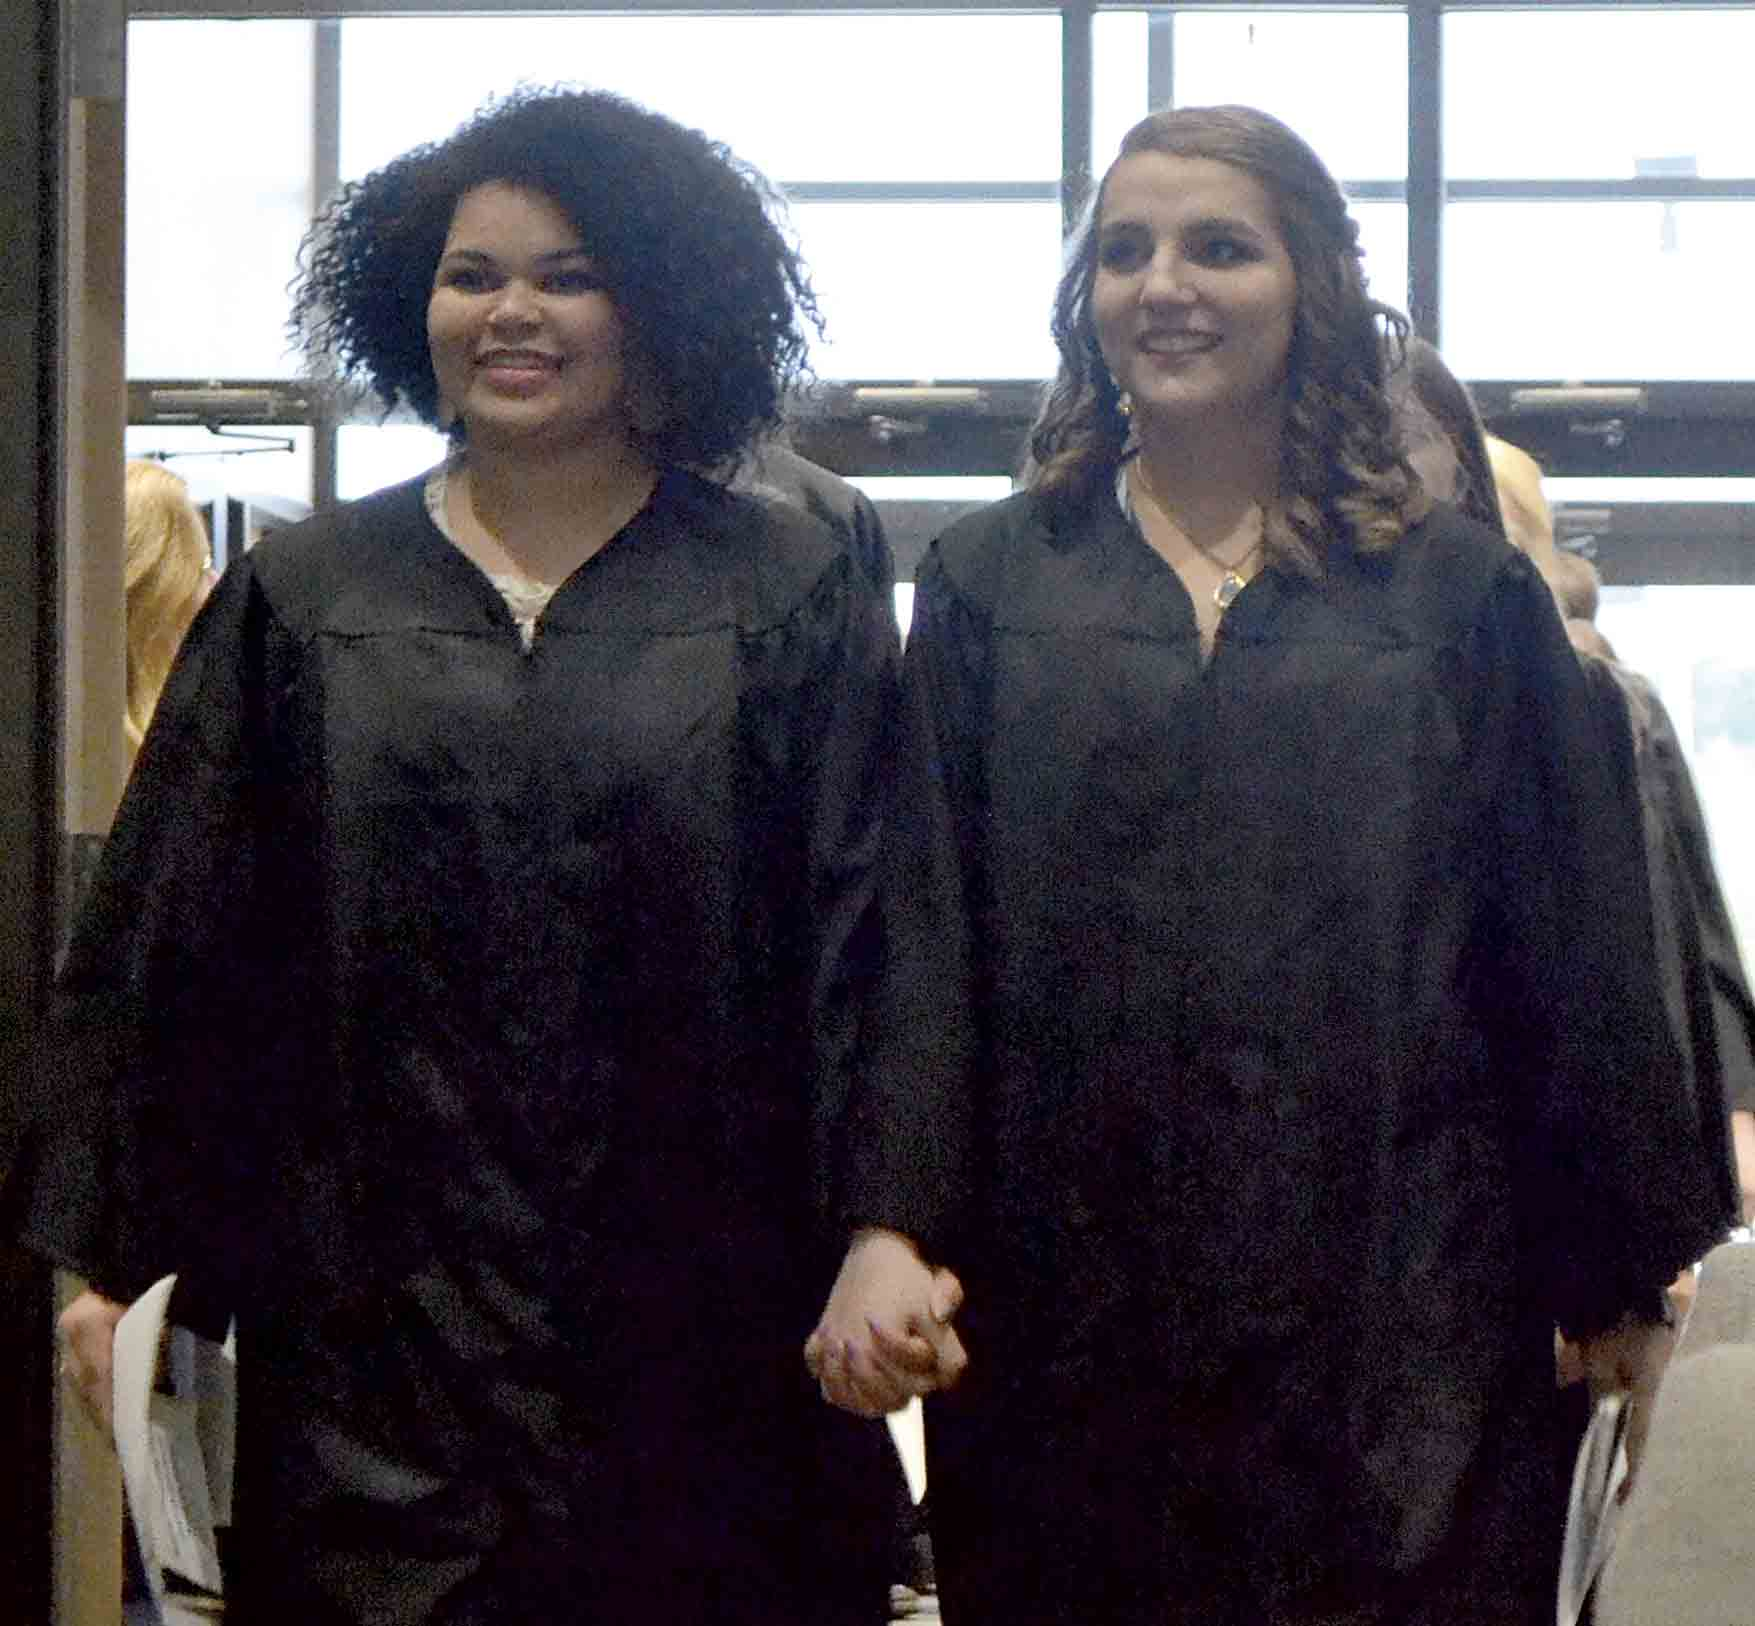 North Fayette Valley seniors Ava Hutchinson and Katelyn Tyler (l-r) walk hand-in-hand into Sunday evening's baccalaureate at the First Baptist church in Elgin. (Megan Molseed photo)NFV Graduation 2019By Meagan Molseedmmolseed@...